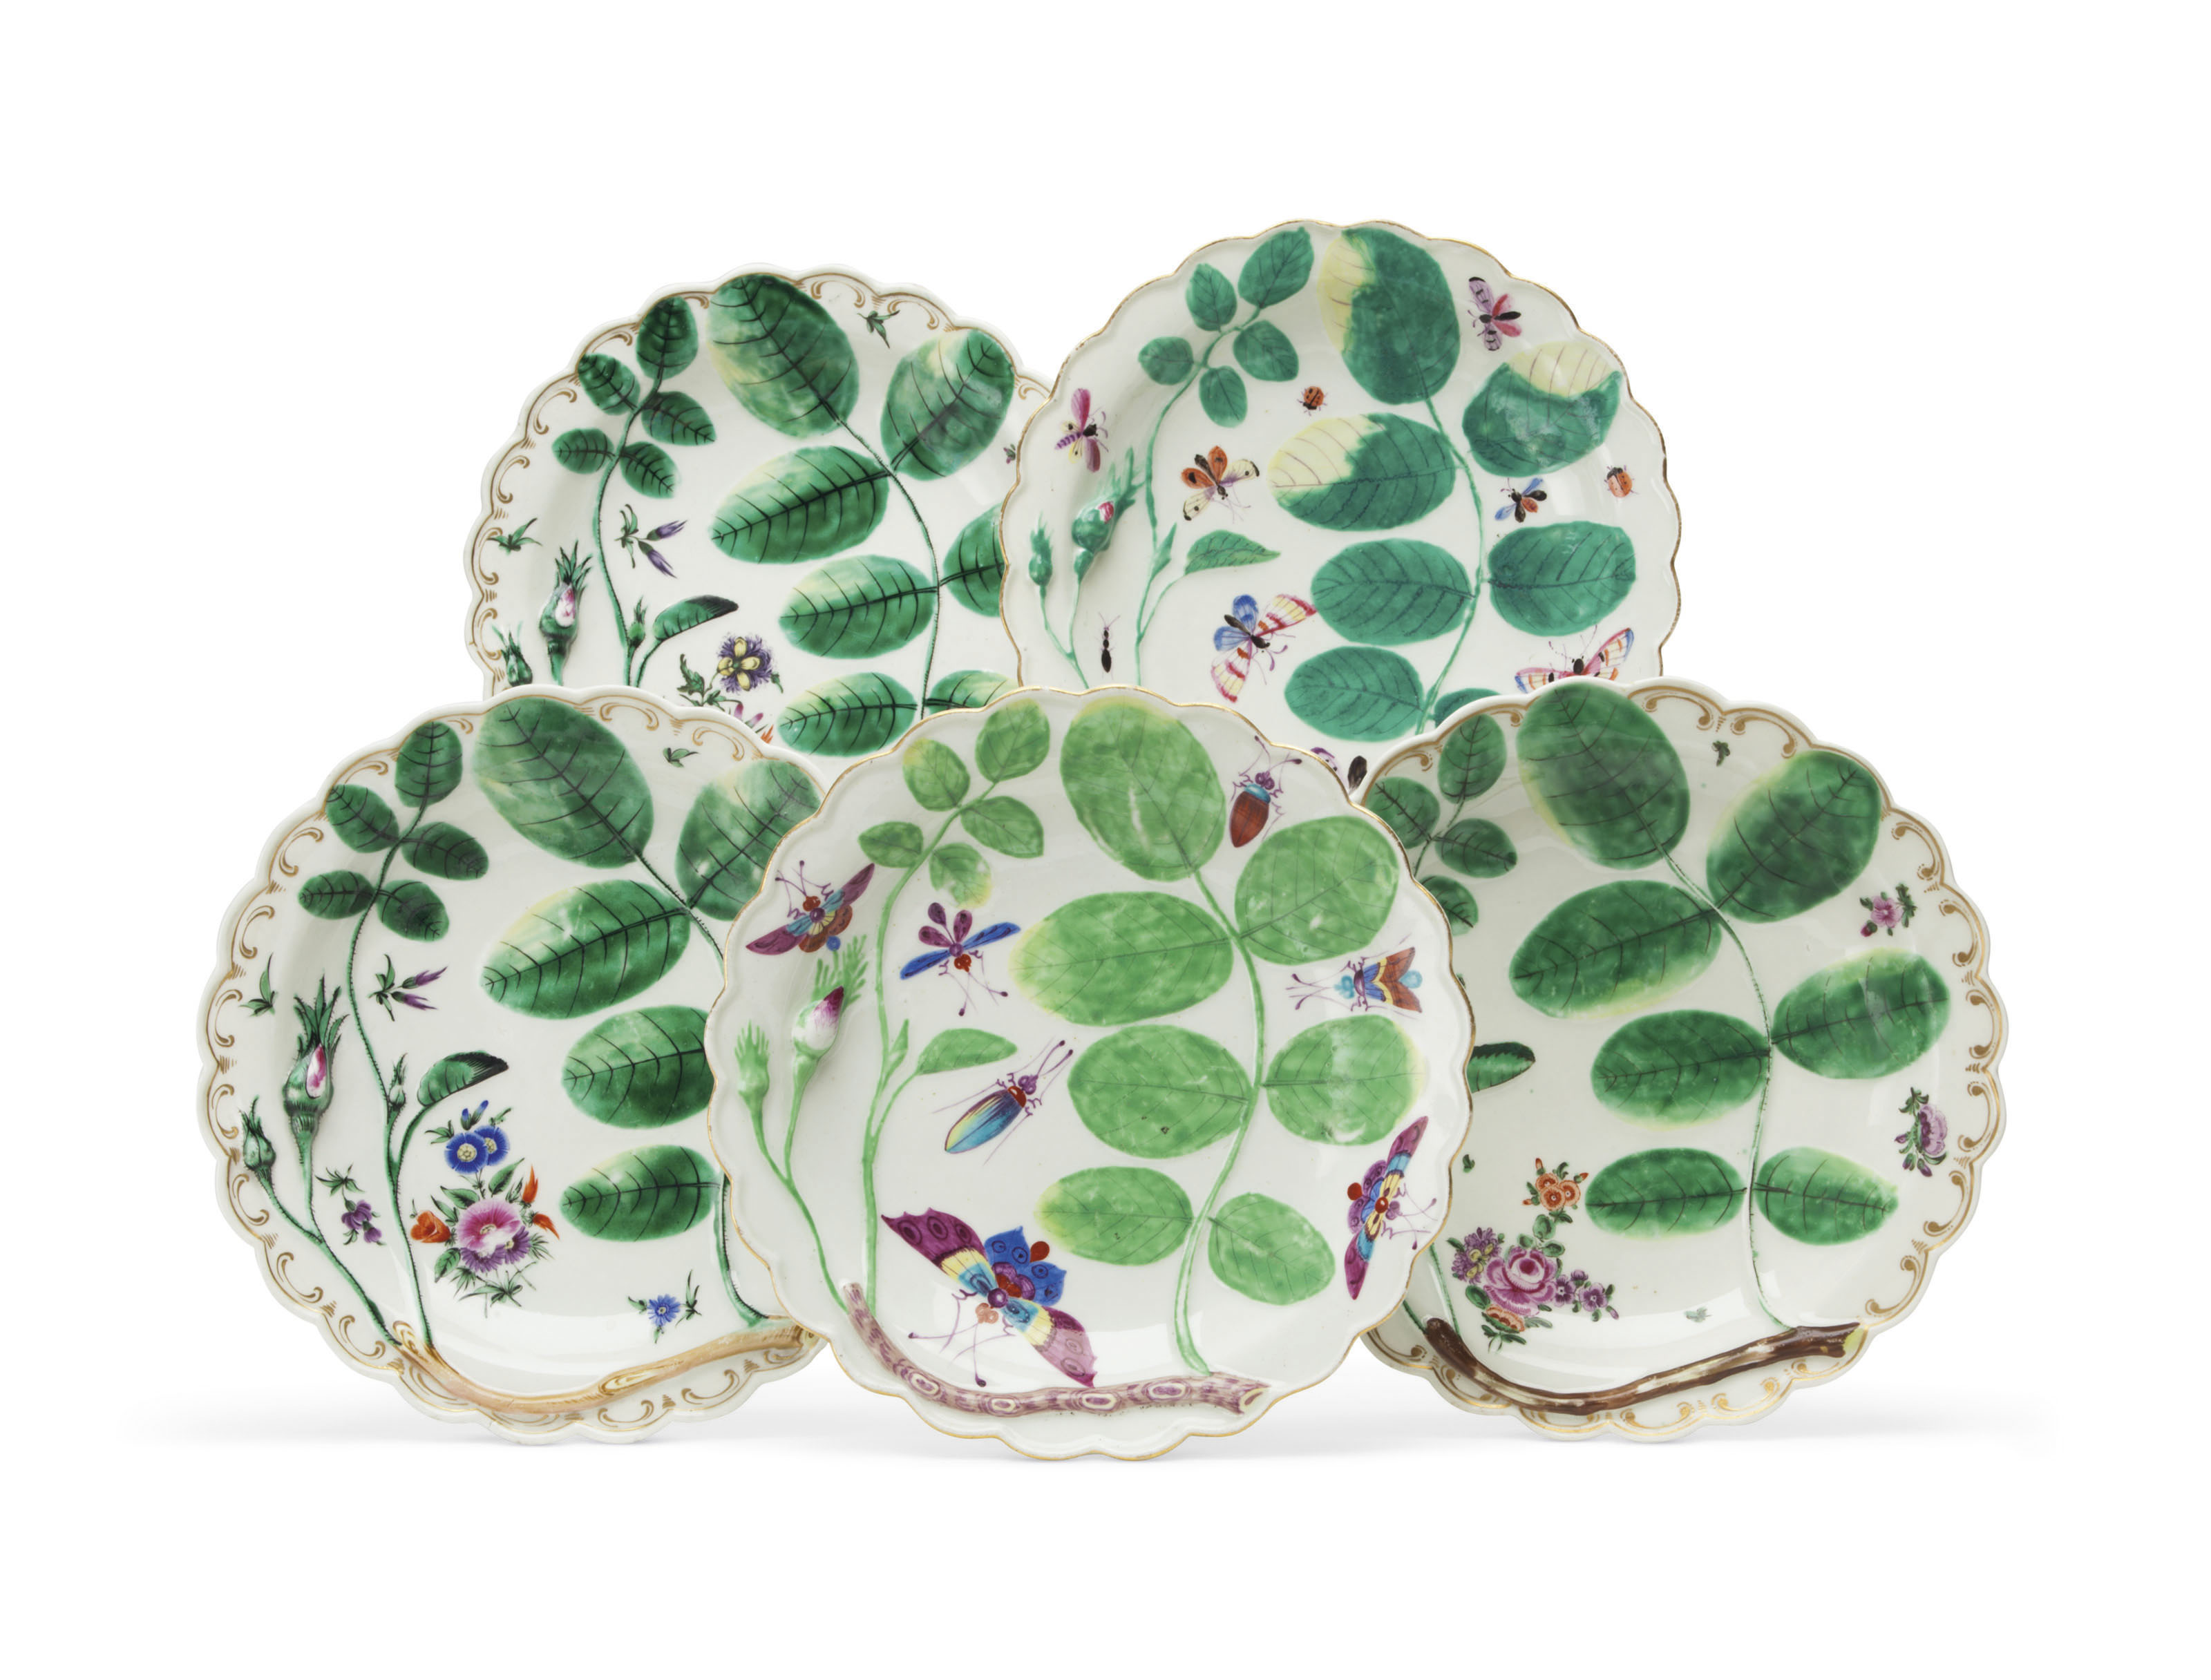 Five Worcester porcelain 'Blind Earl' plates, circa 1770. 7½ in (19  cm) diameter. Sold for $13,750 on 16 January 2019 at Christie's in New York